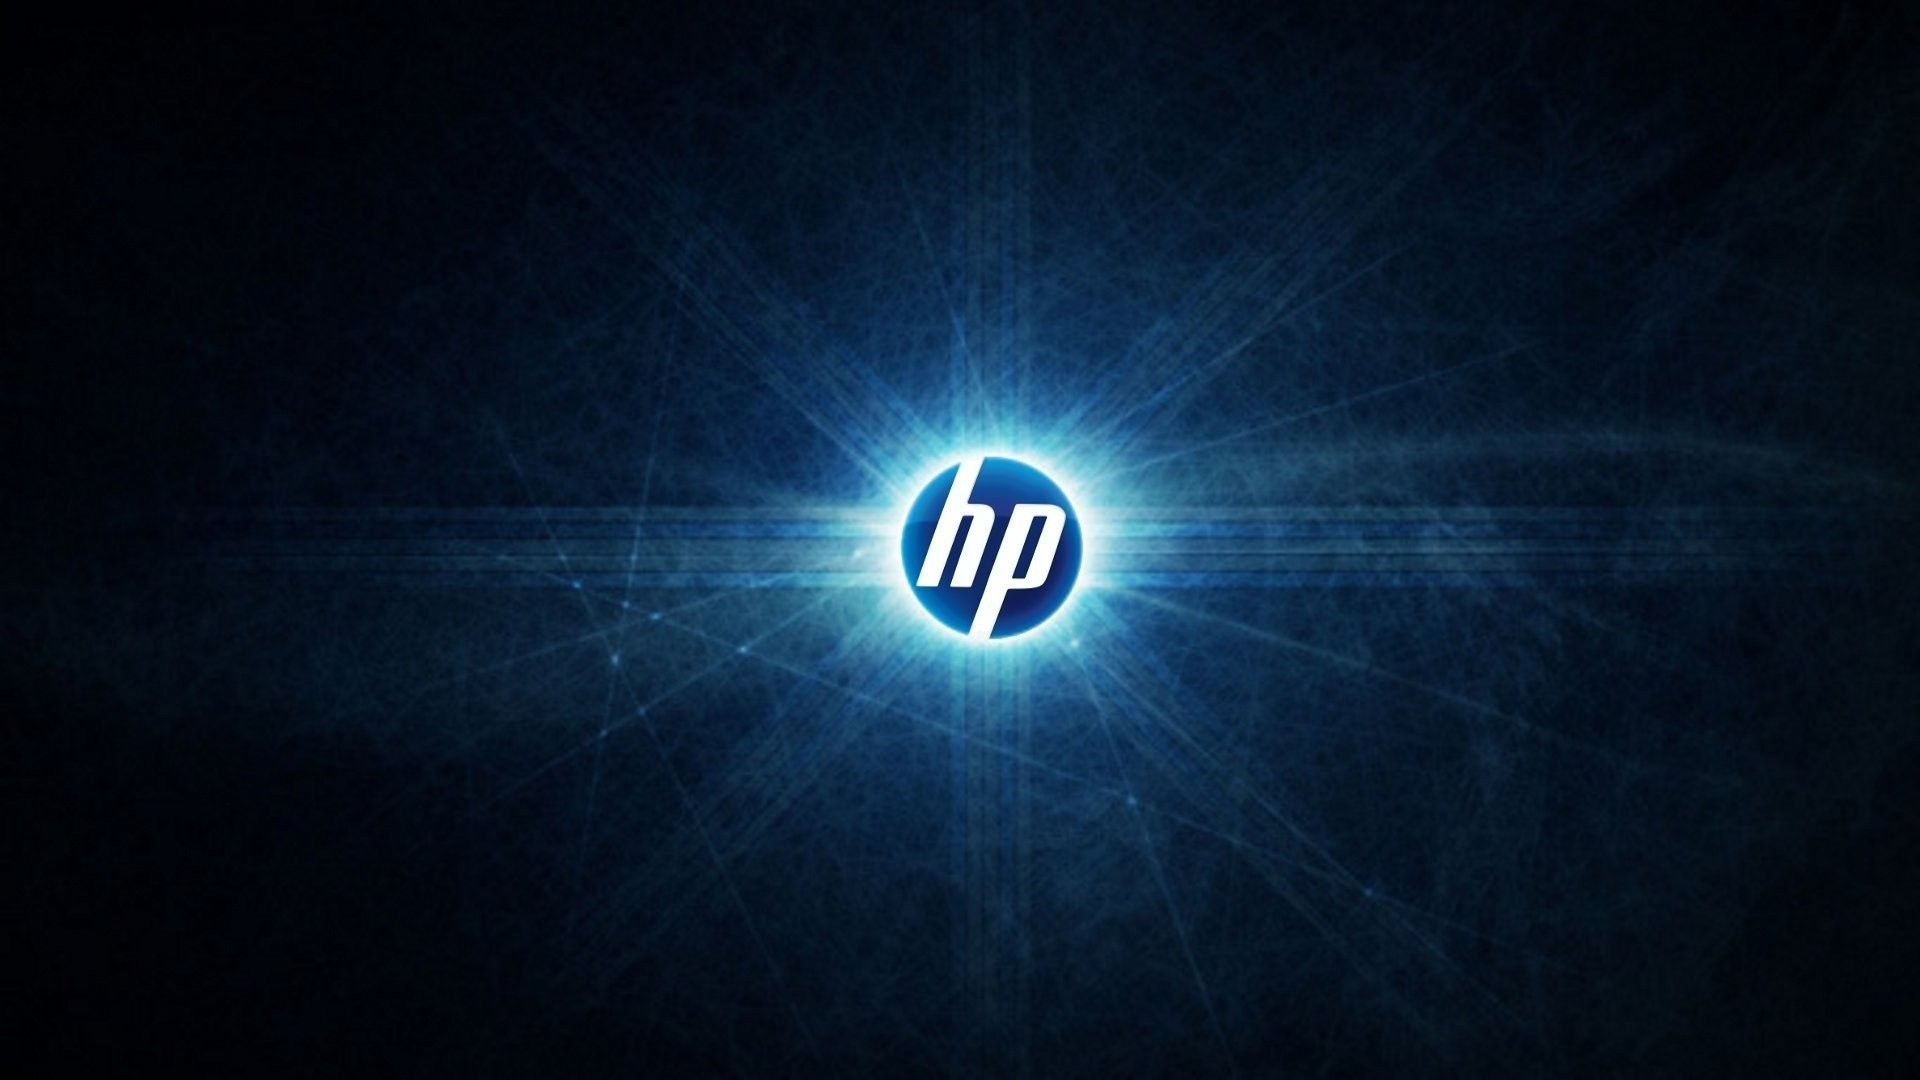 Hp Wallpaper Hd En 2019 Fondos De Pantalla Escritorio